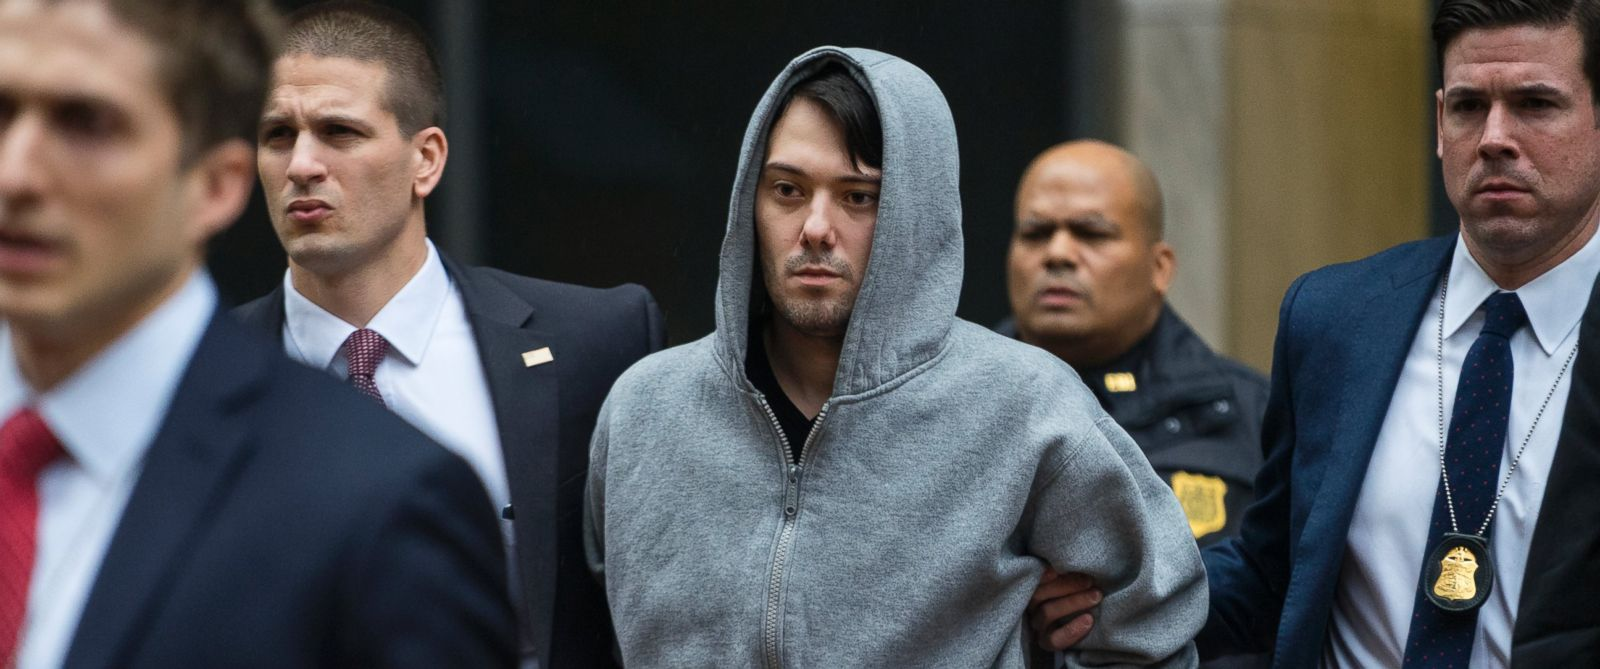 PHOTO: Martin Shkreli, the former hedge fund manager under fire for buying a pharmaceutical company and ratcheting up the price of a life-saving drug, is escorted by law enforcement agents in New York City on Dec. 17, 2015.